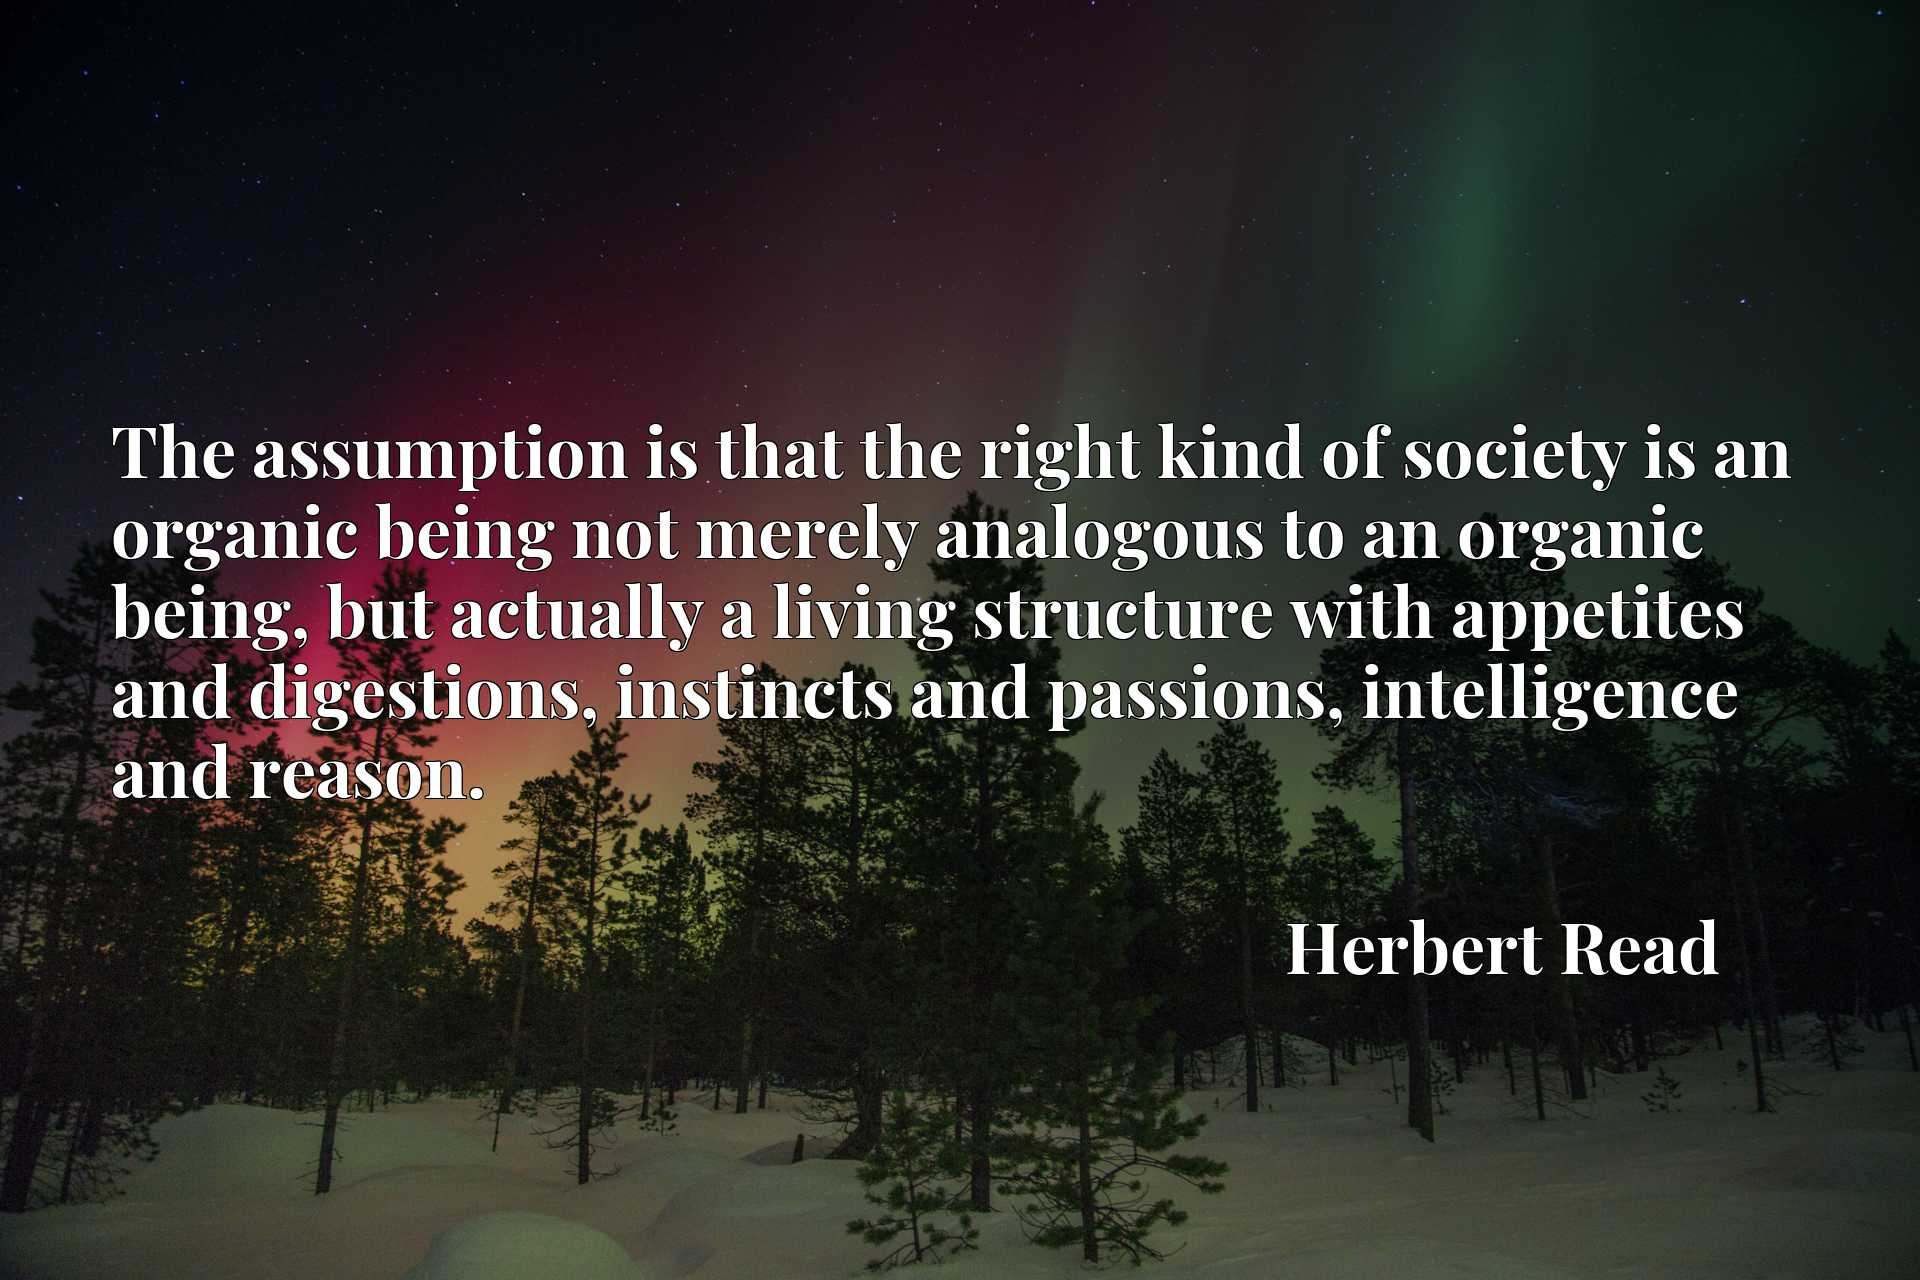 The assumption is that the right kind of society is an organic being not merely analogous to an organic being, but actually a living structure with appetites and digestions, instincts and passions, intelligence and reason.